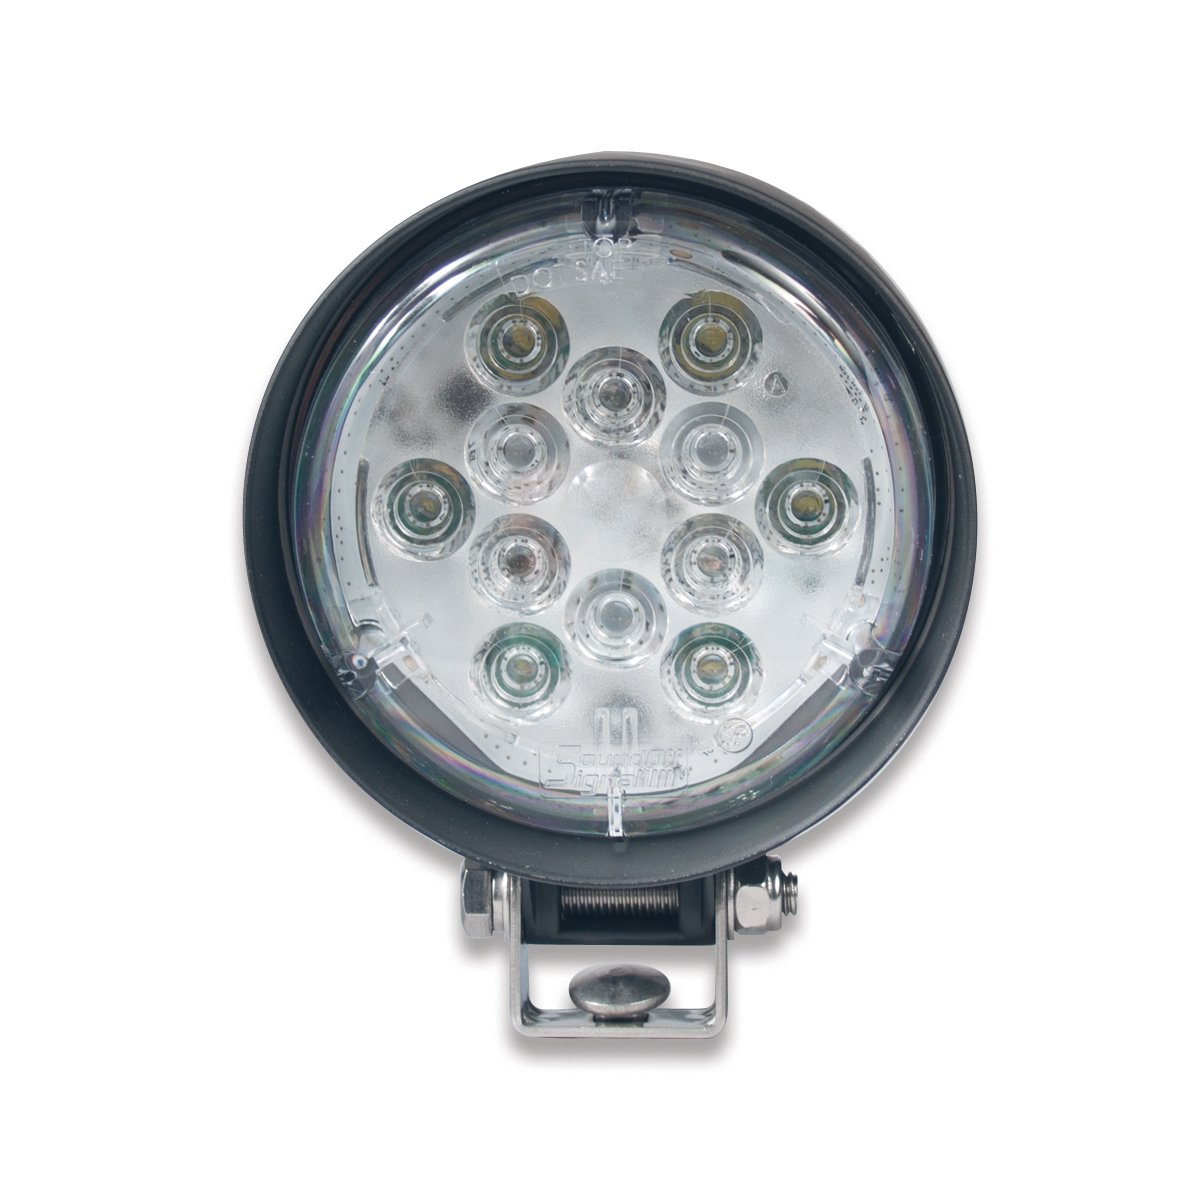 PAR 36 Work Lights Product Image